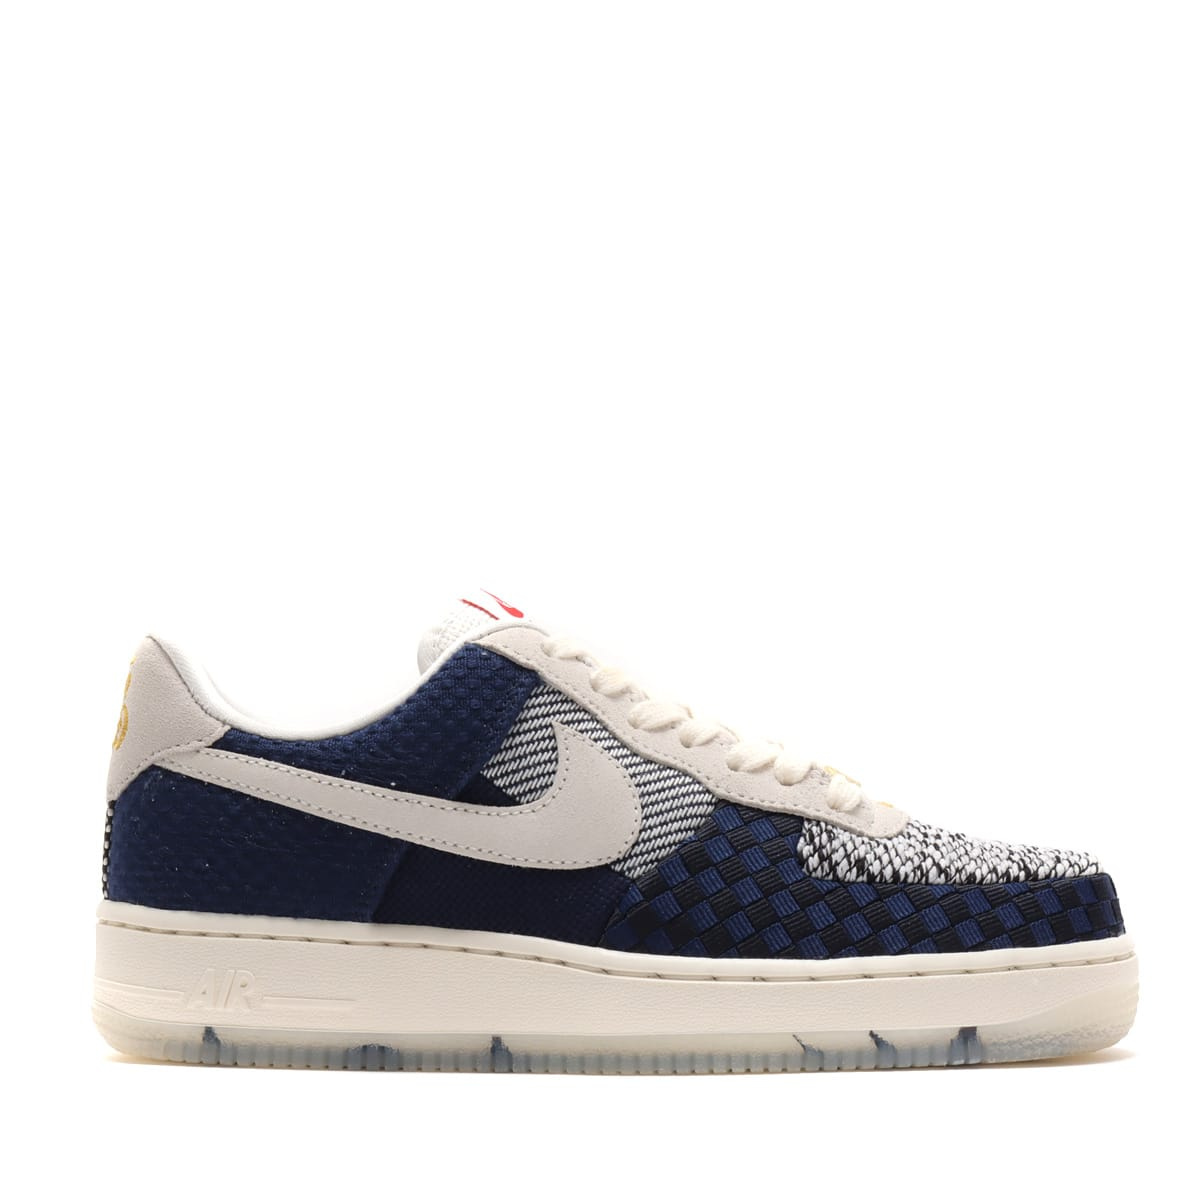 NIKE WMNS AIR FORCE 1 '07 LV8 21SP-I